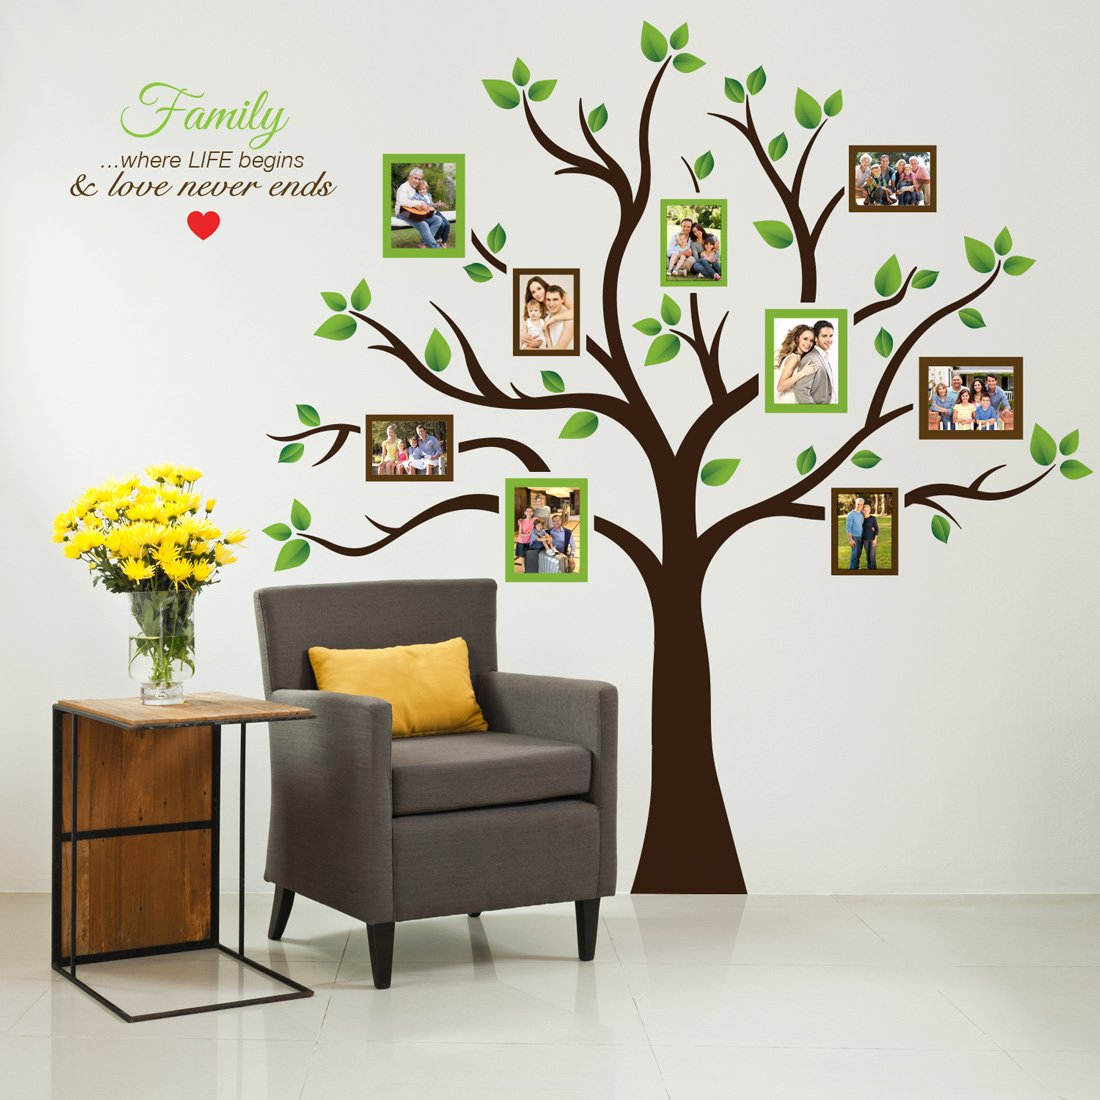 Amazon.com: Timber Artbox Large Family Tree Photo Frames Wall Decal   The  Sweetest Highlight Of Your Home And Family: Home U0026 Kitchen